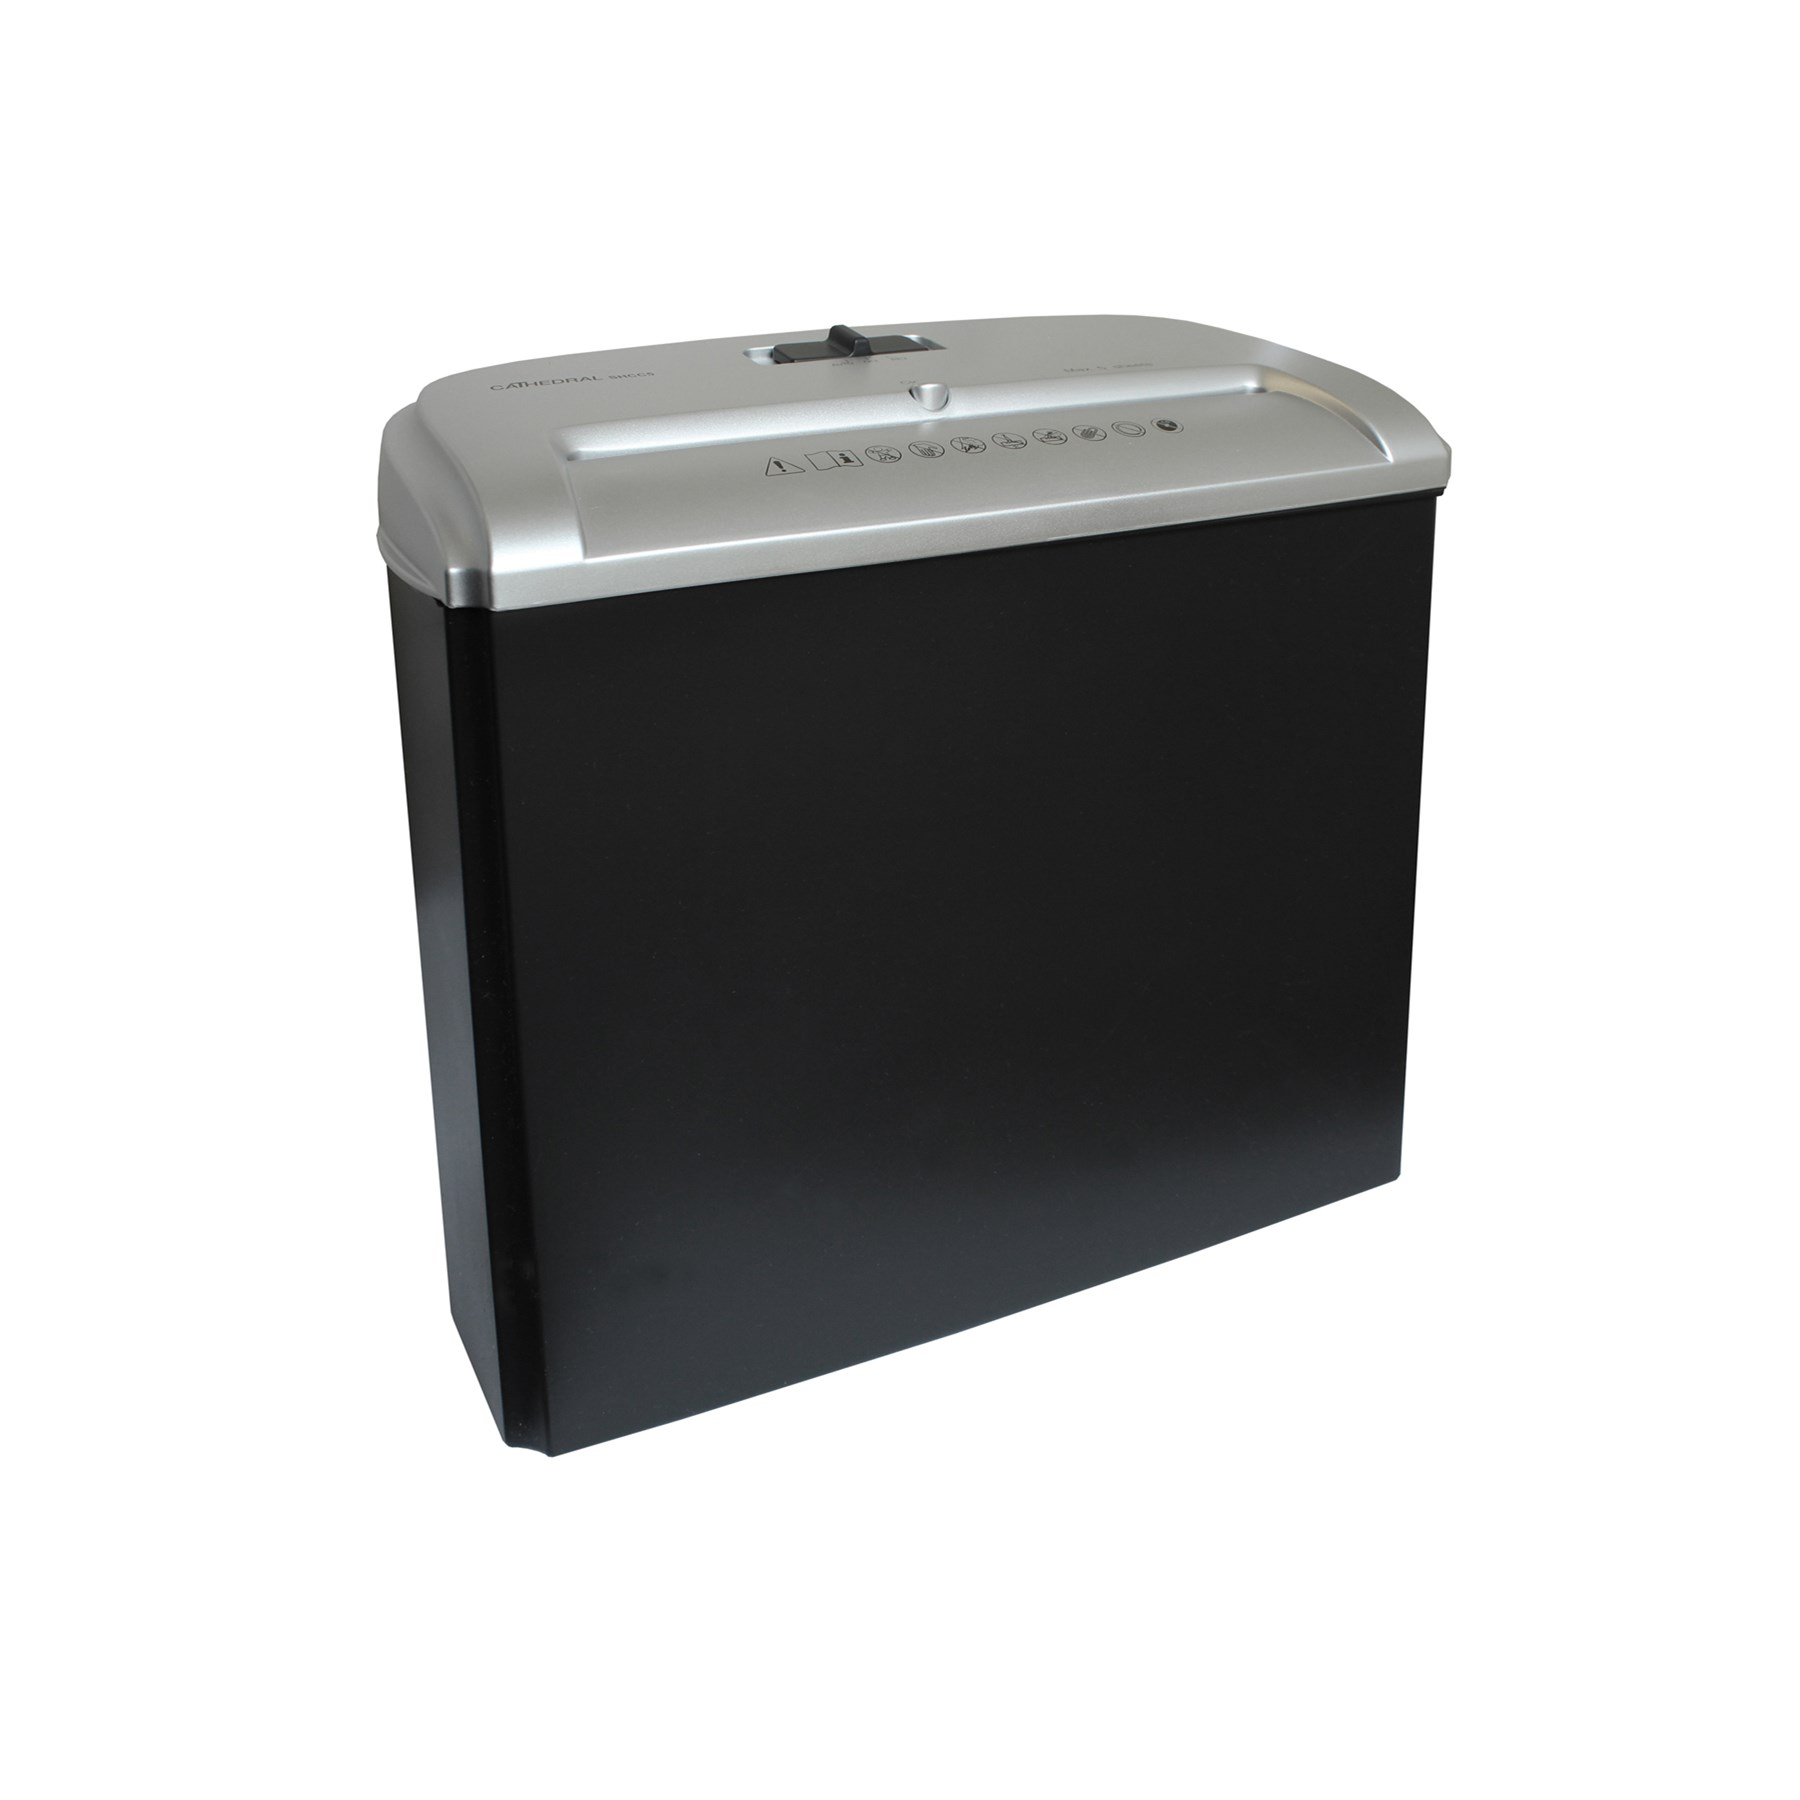 Cathedral 5 Sheet Cross Cut Shredder